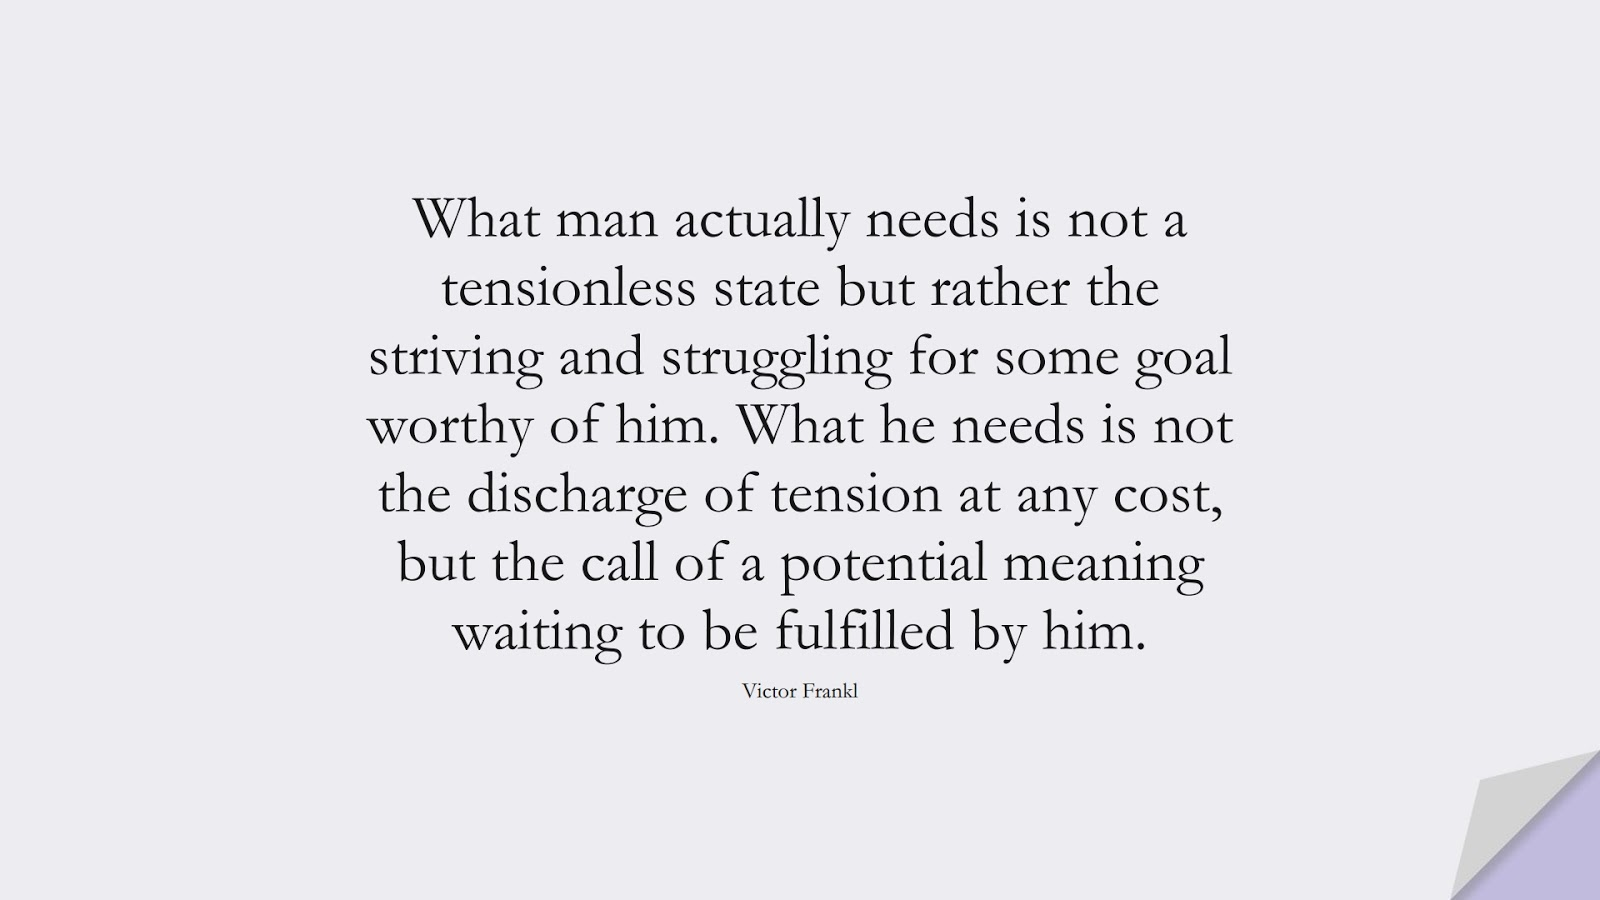 What man actually needs is not a tensionless state but rather the striving and struggling for some goal worthy of him. What he needs is not the discharge of tension at any cost, but the call of a potential meaning waiting to be fulfilled by him. (Victor Frankl);  #ChangeQuotes